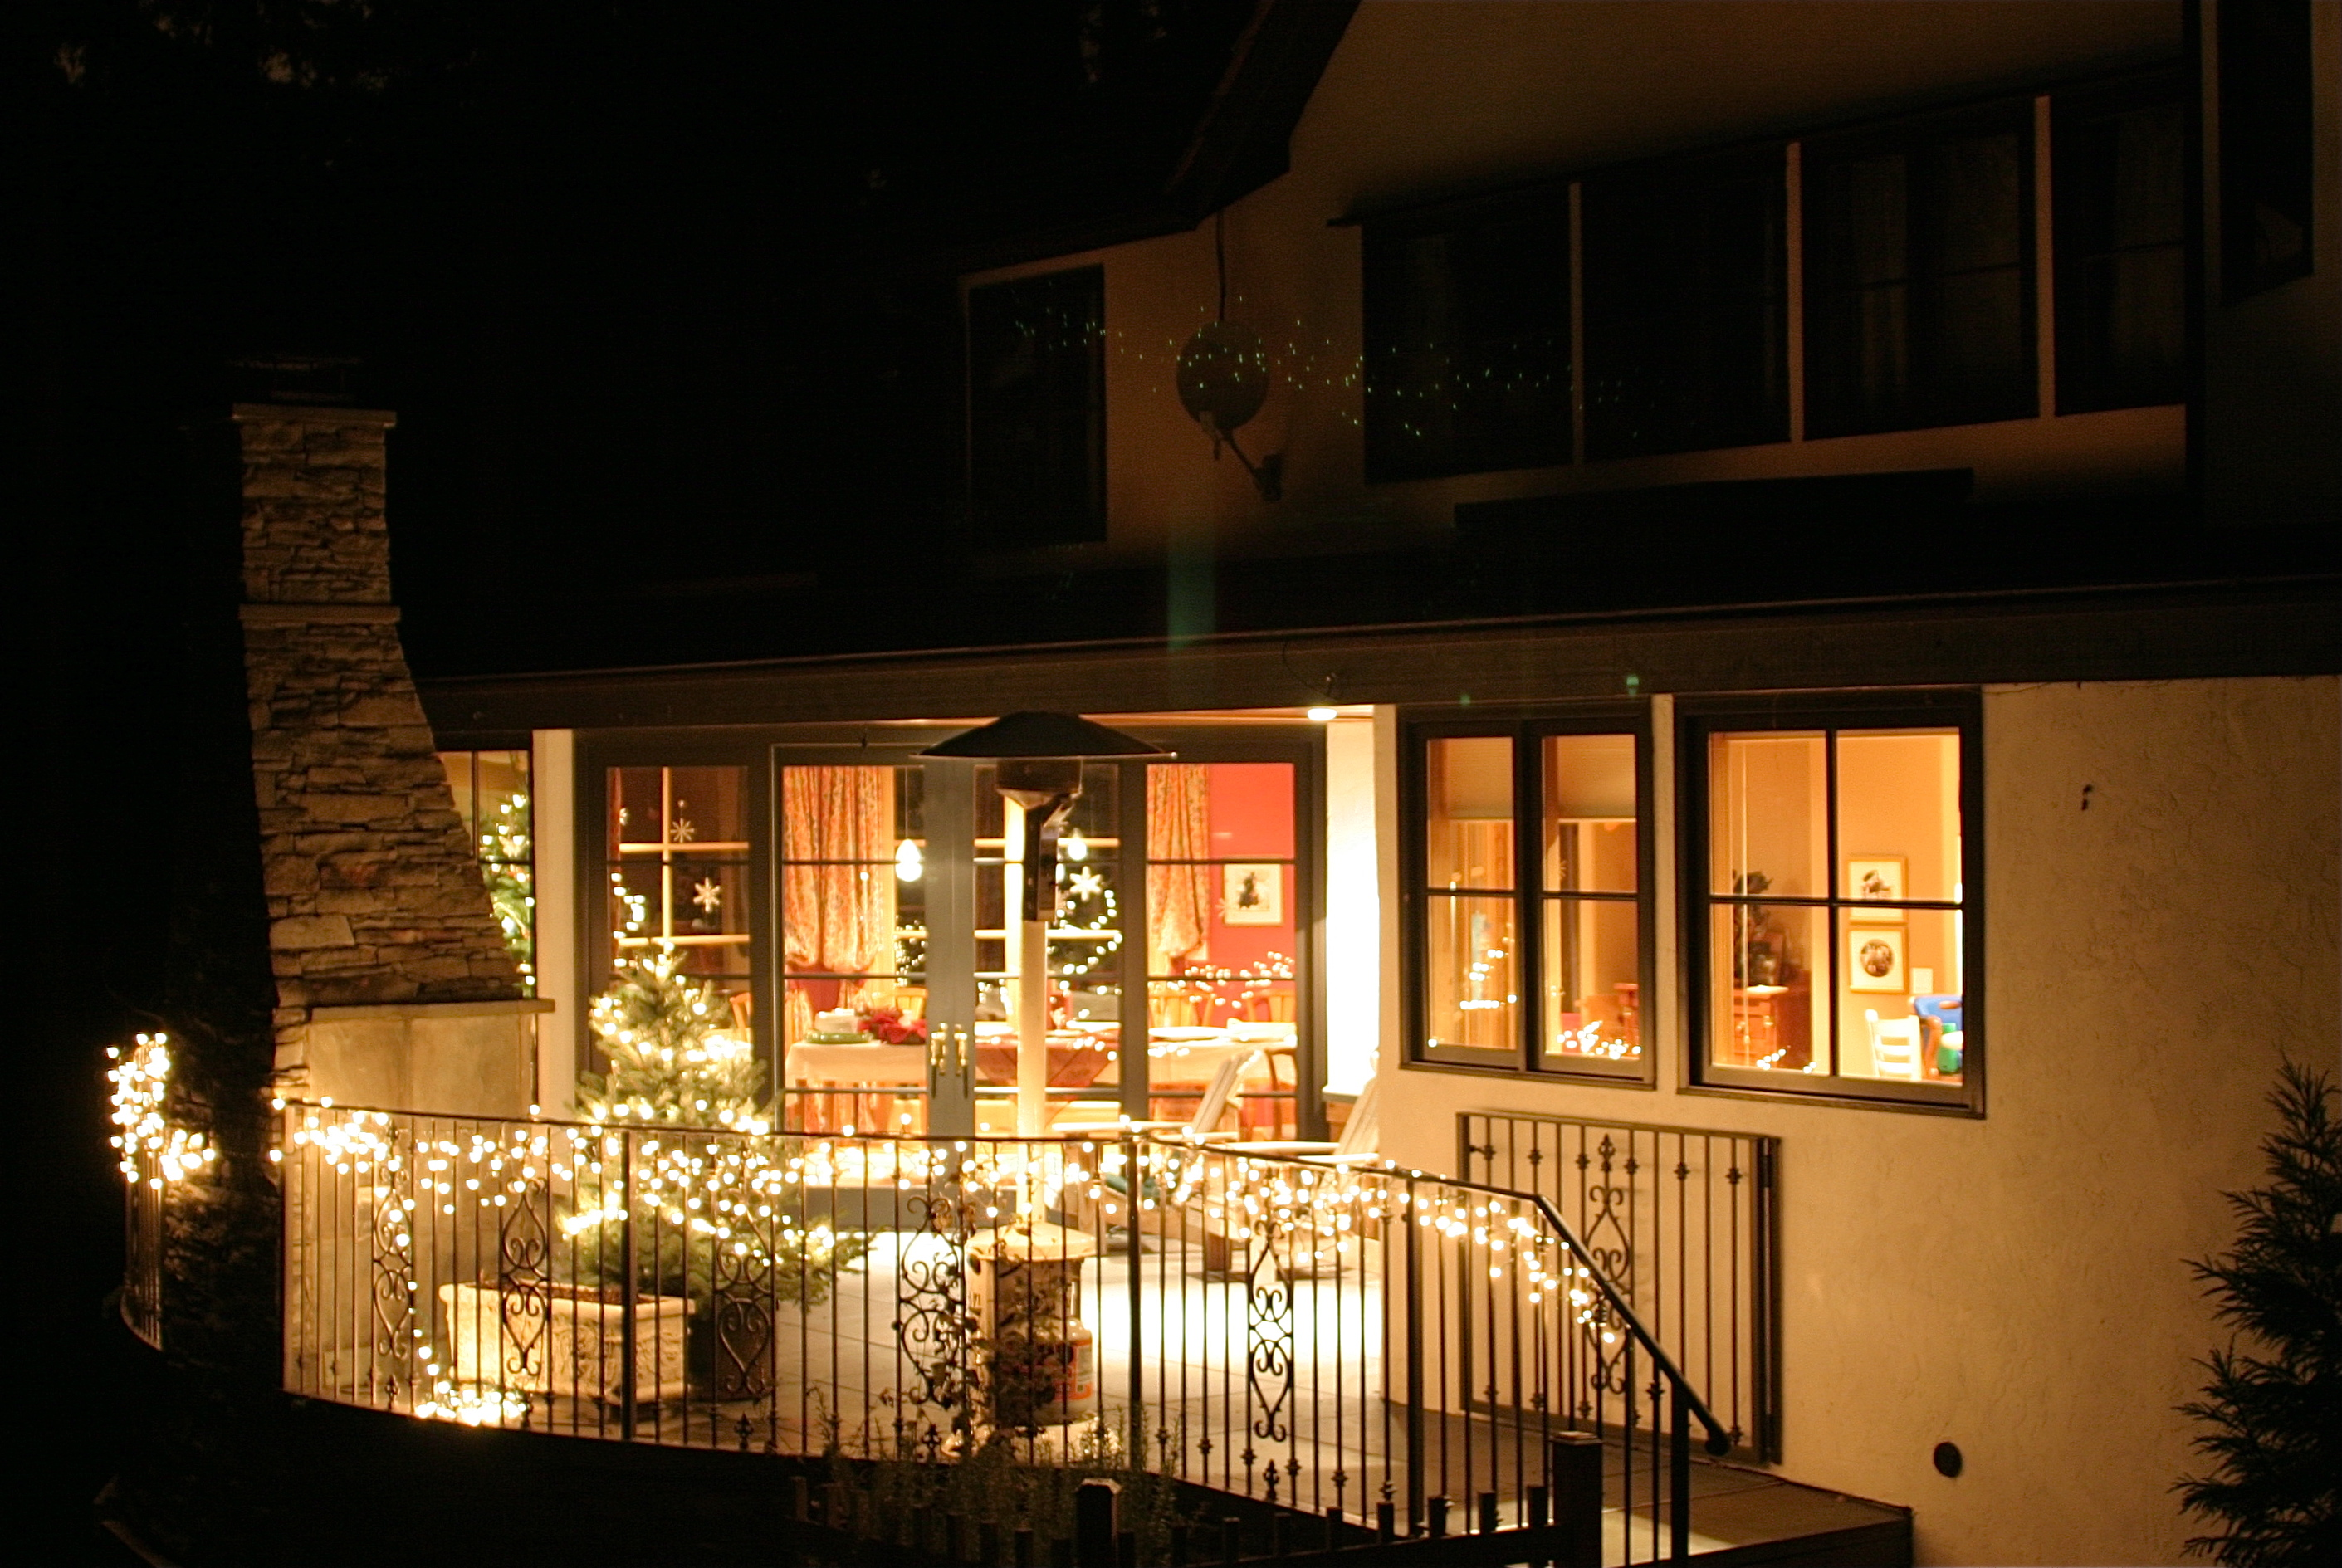 ... Home lighting & How to save energy through lighting control with home automation ... azcodes.com